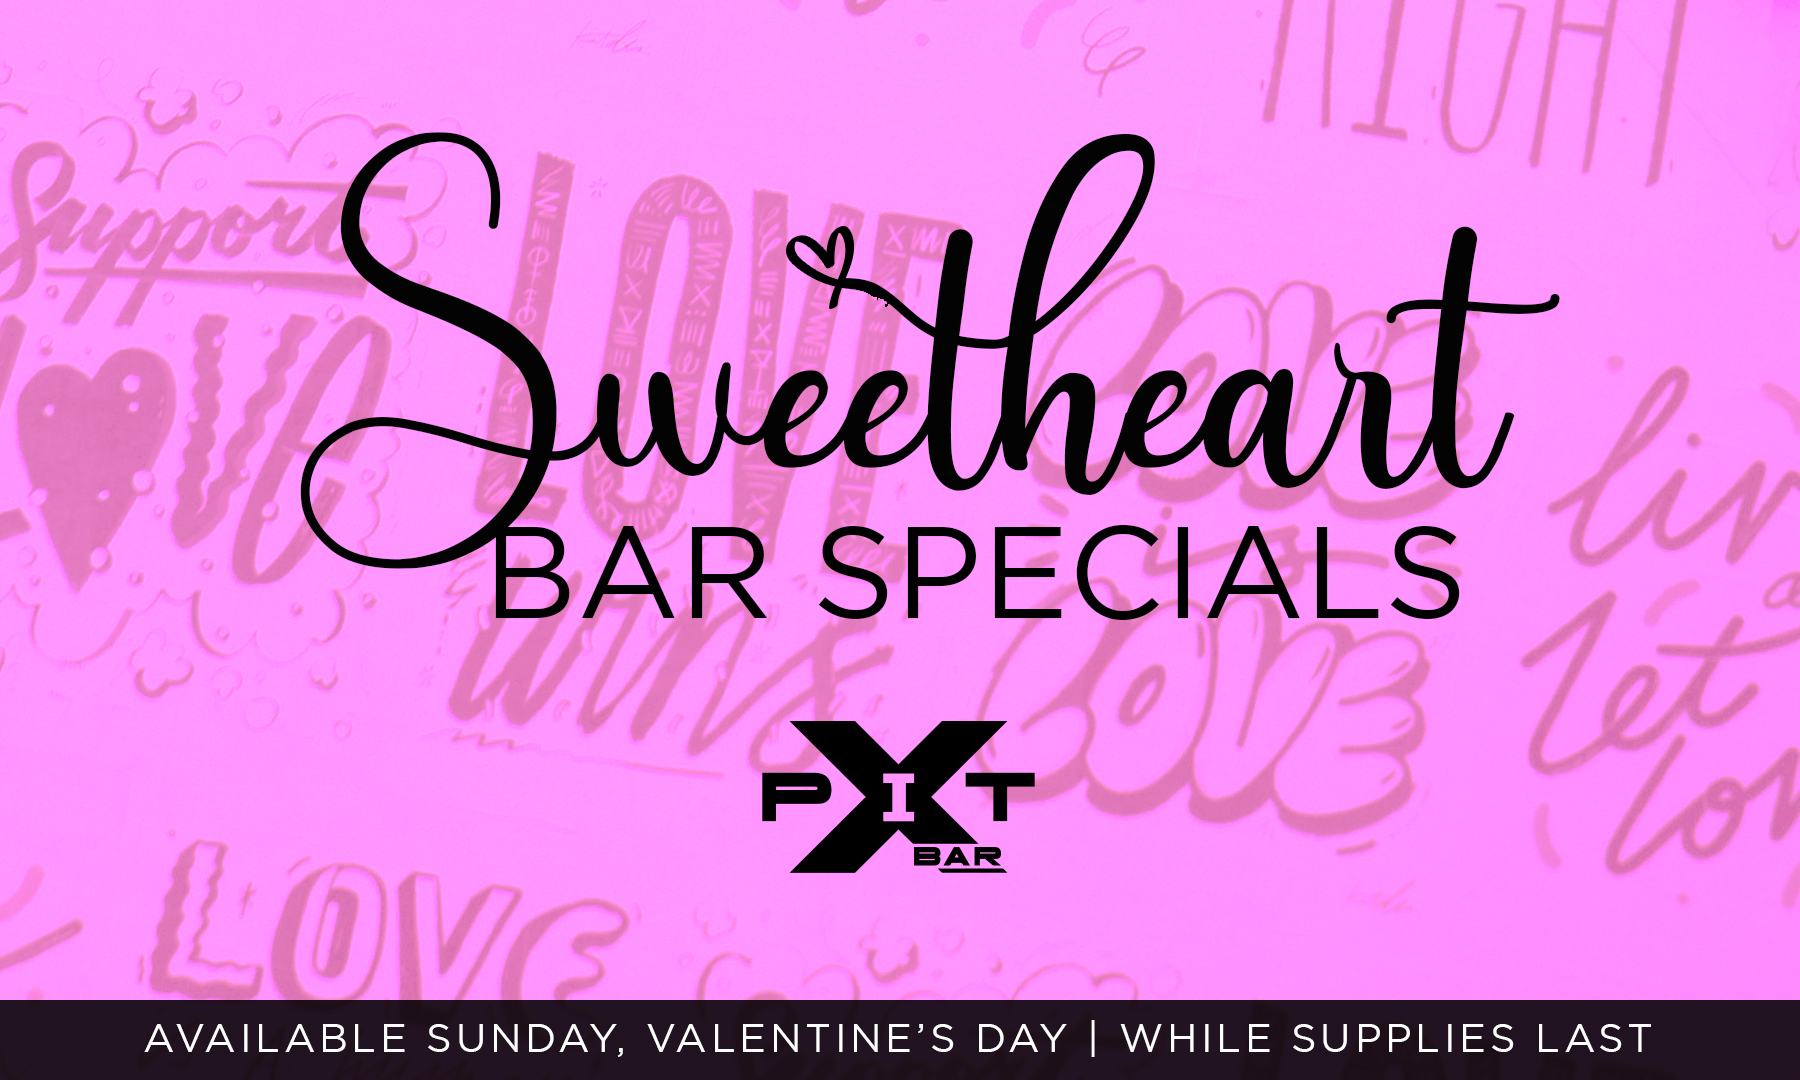 Sweetheart bar specials at Xtreme